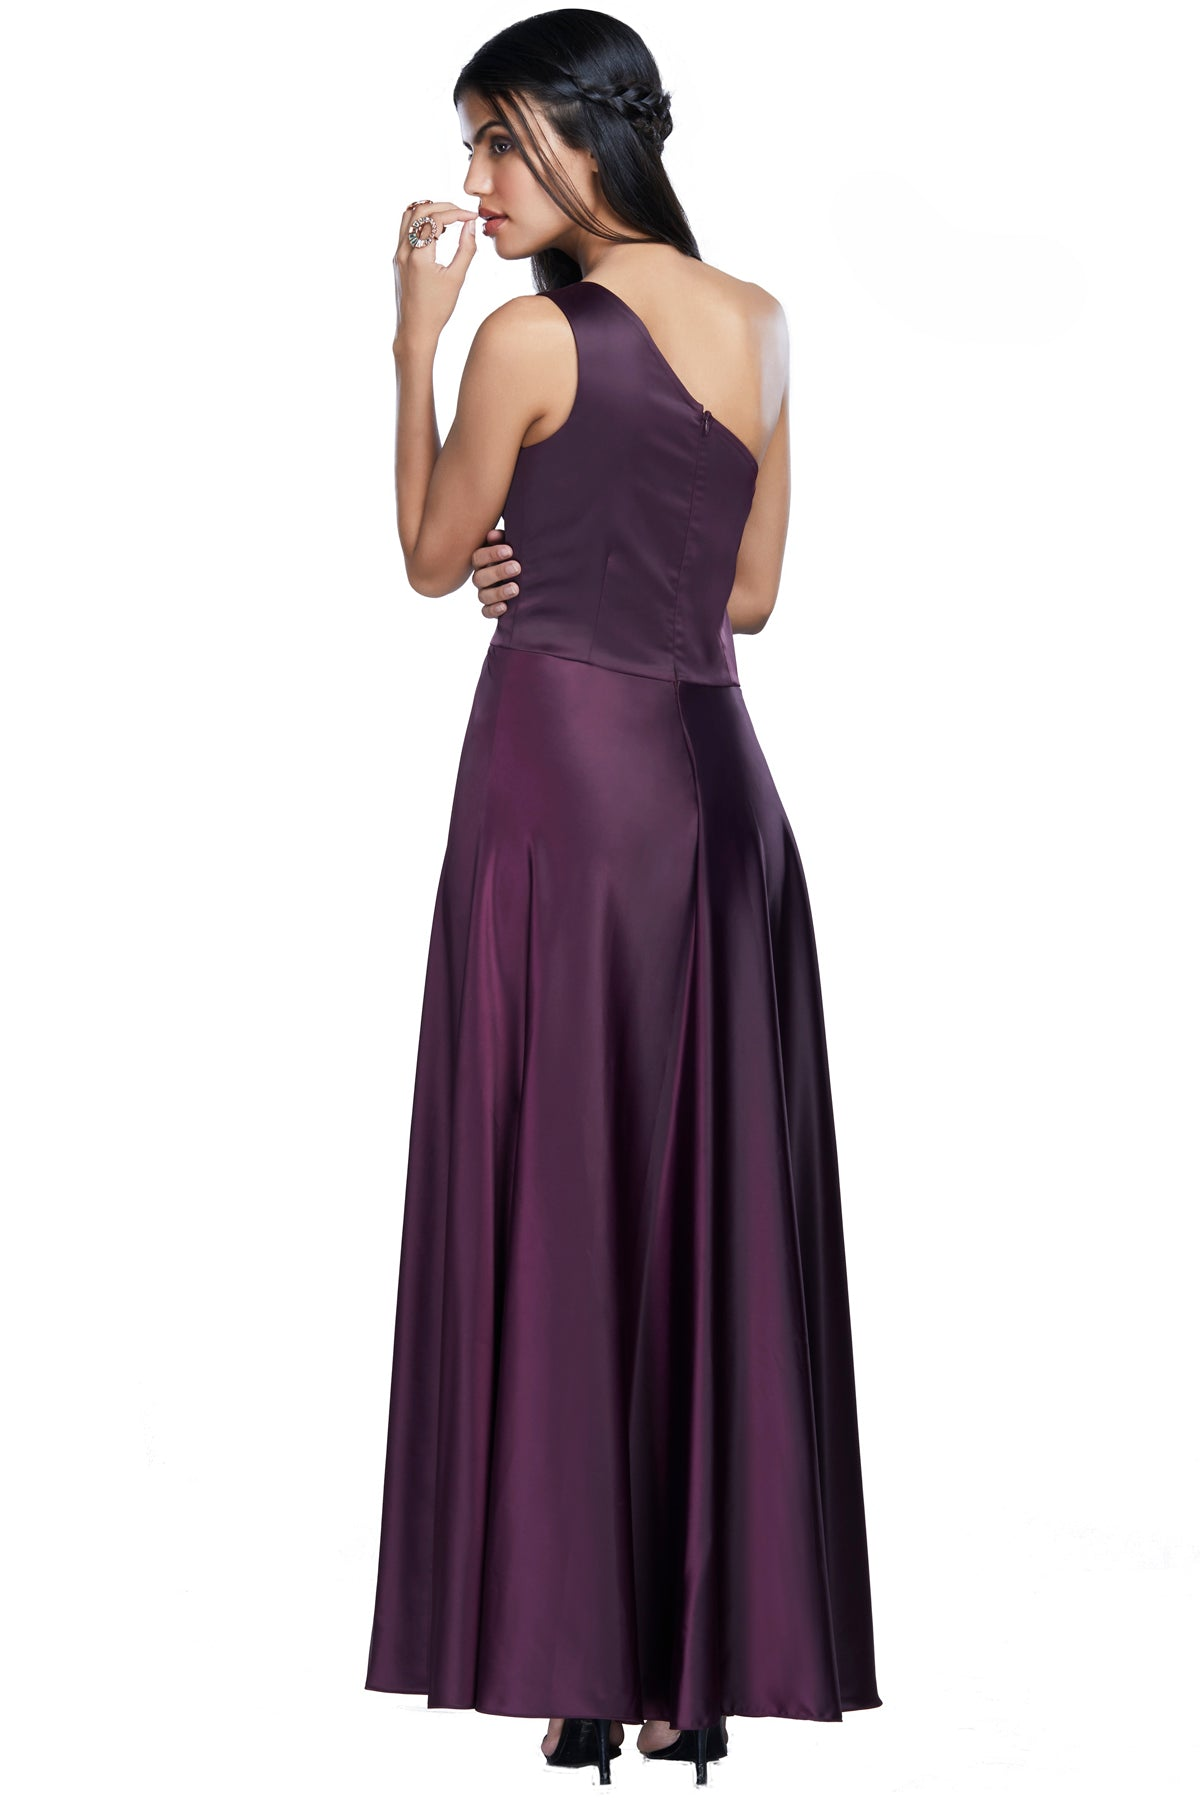 Purple One Shoulder Cocktail Dress